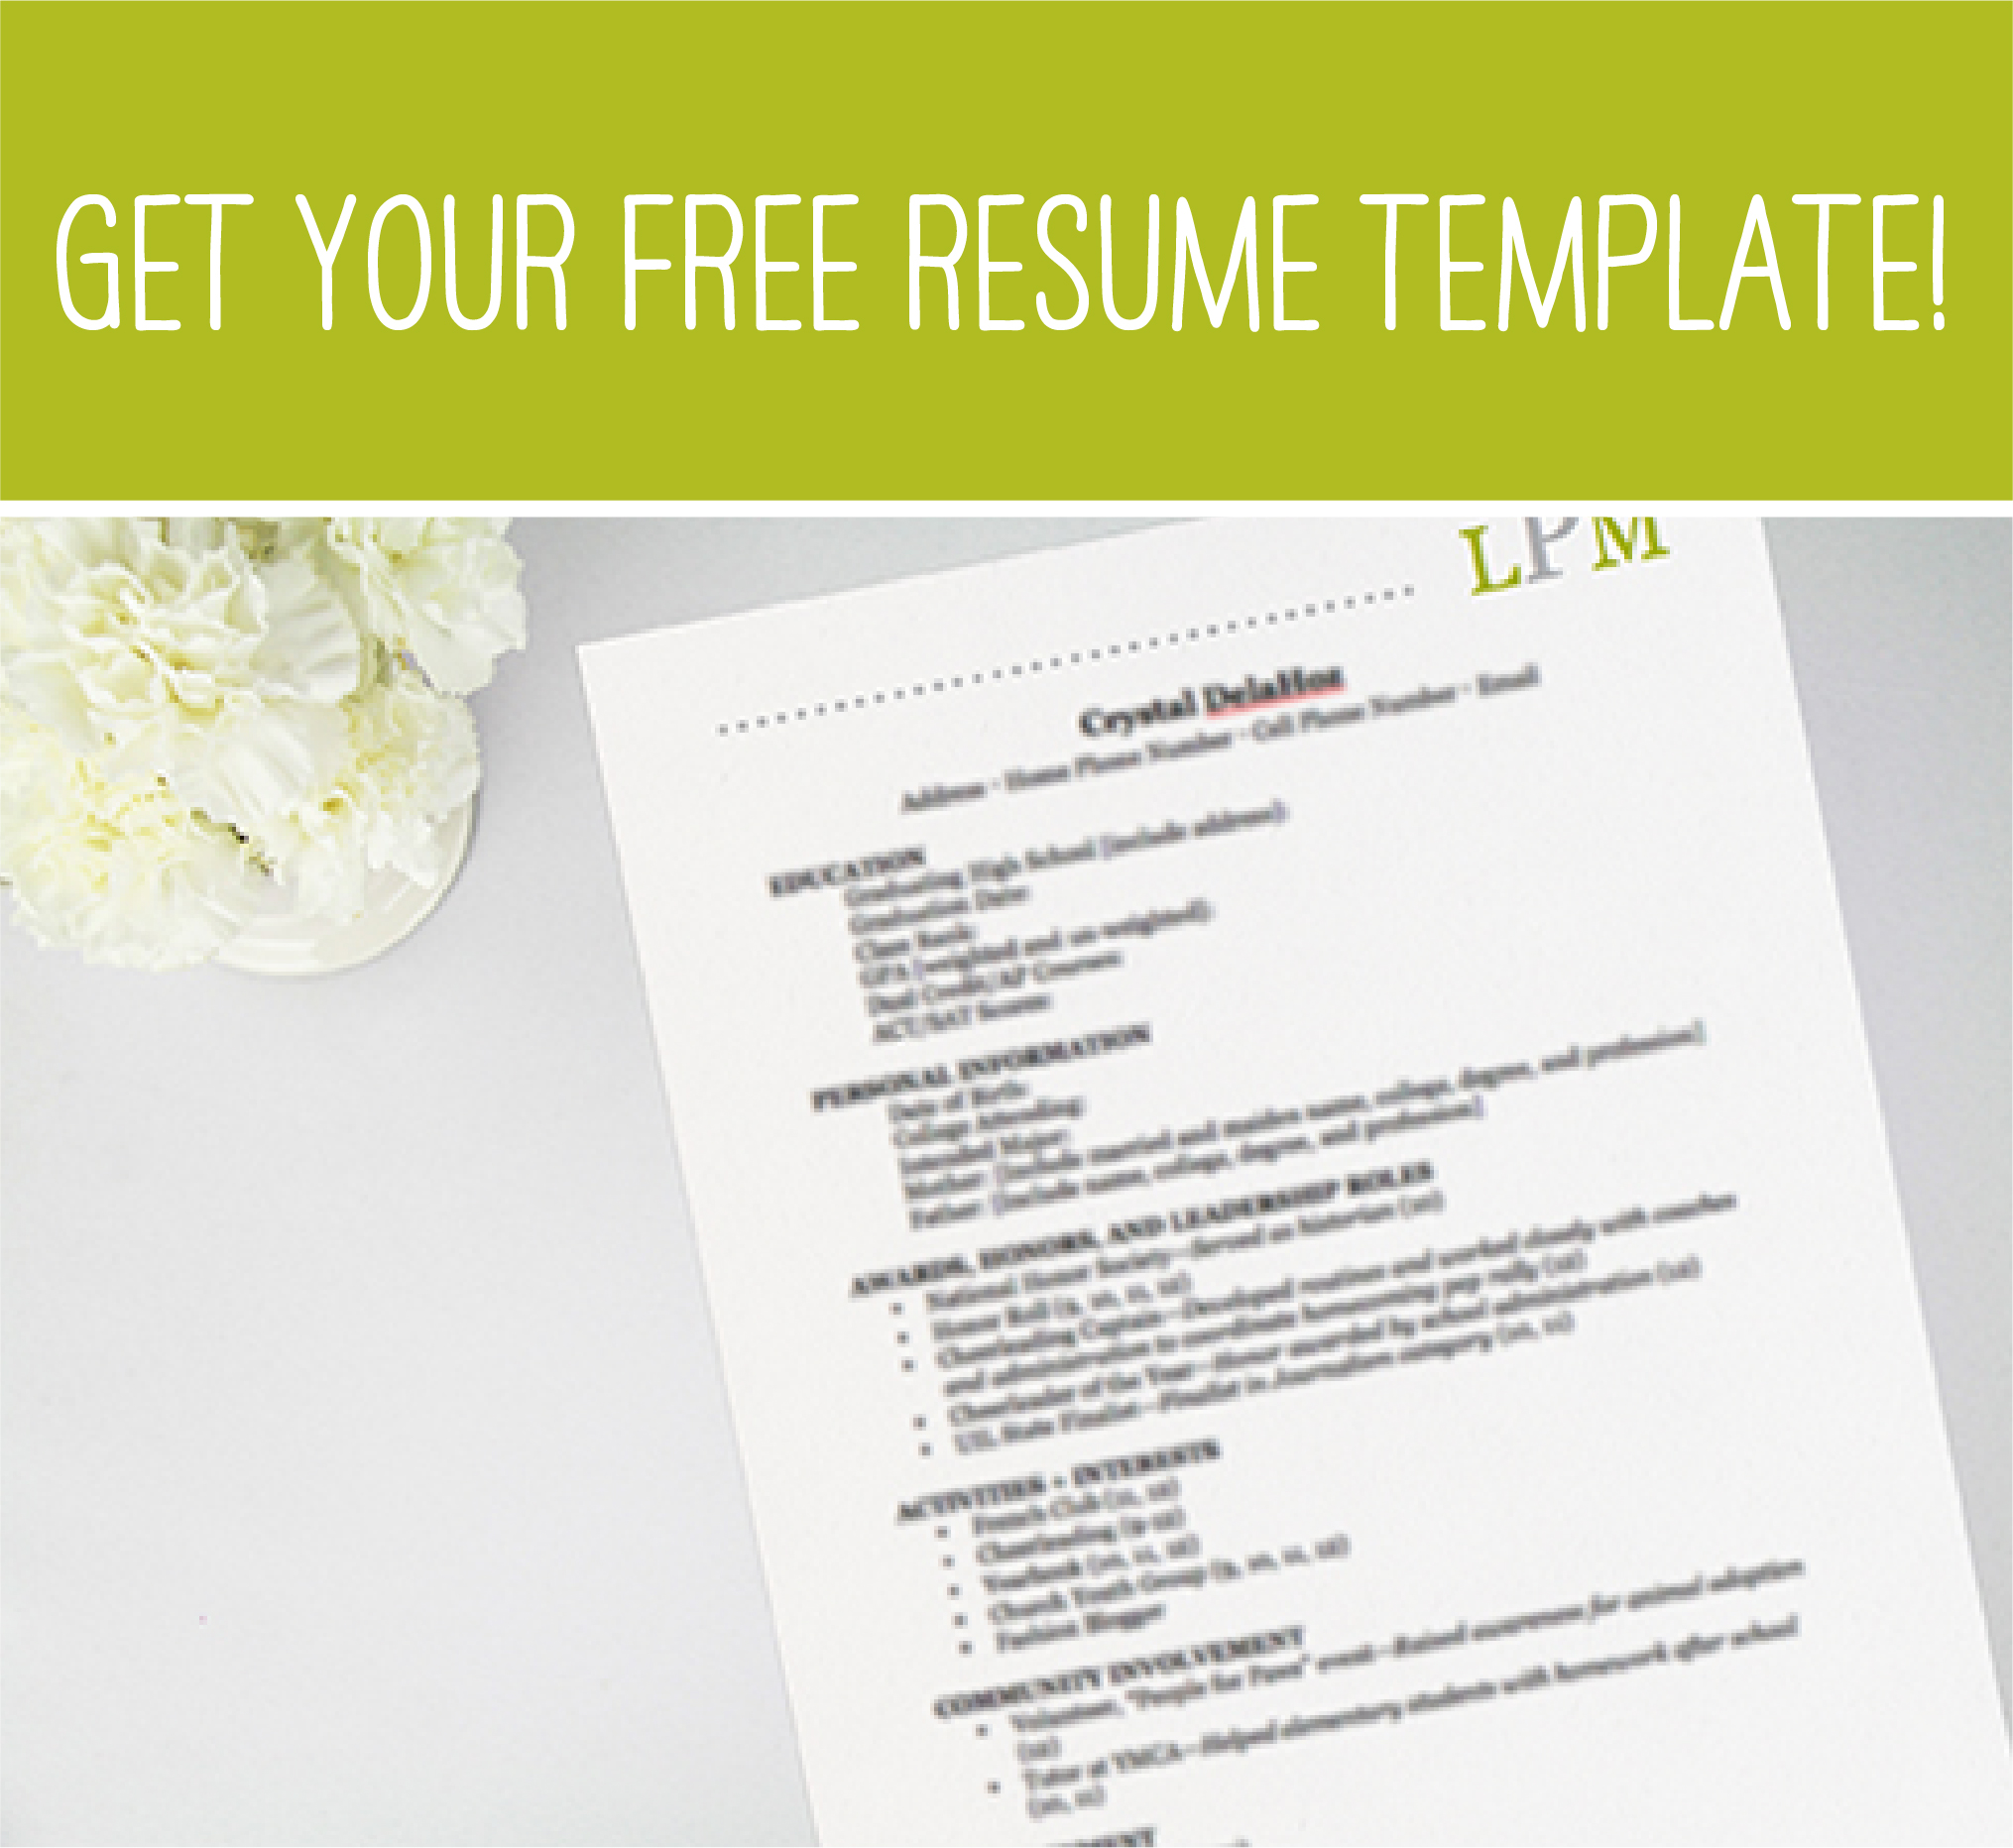 Rush Perfecting Your Resume Senior Portrait Photographer In - Free rush resume template